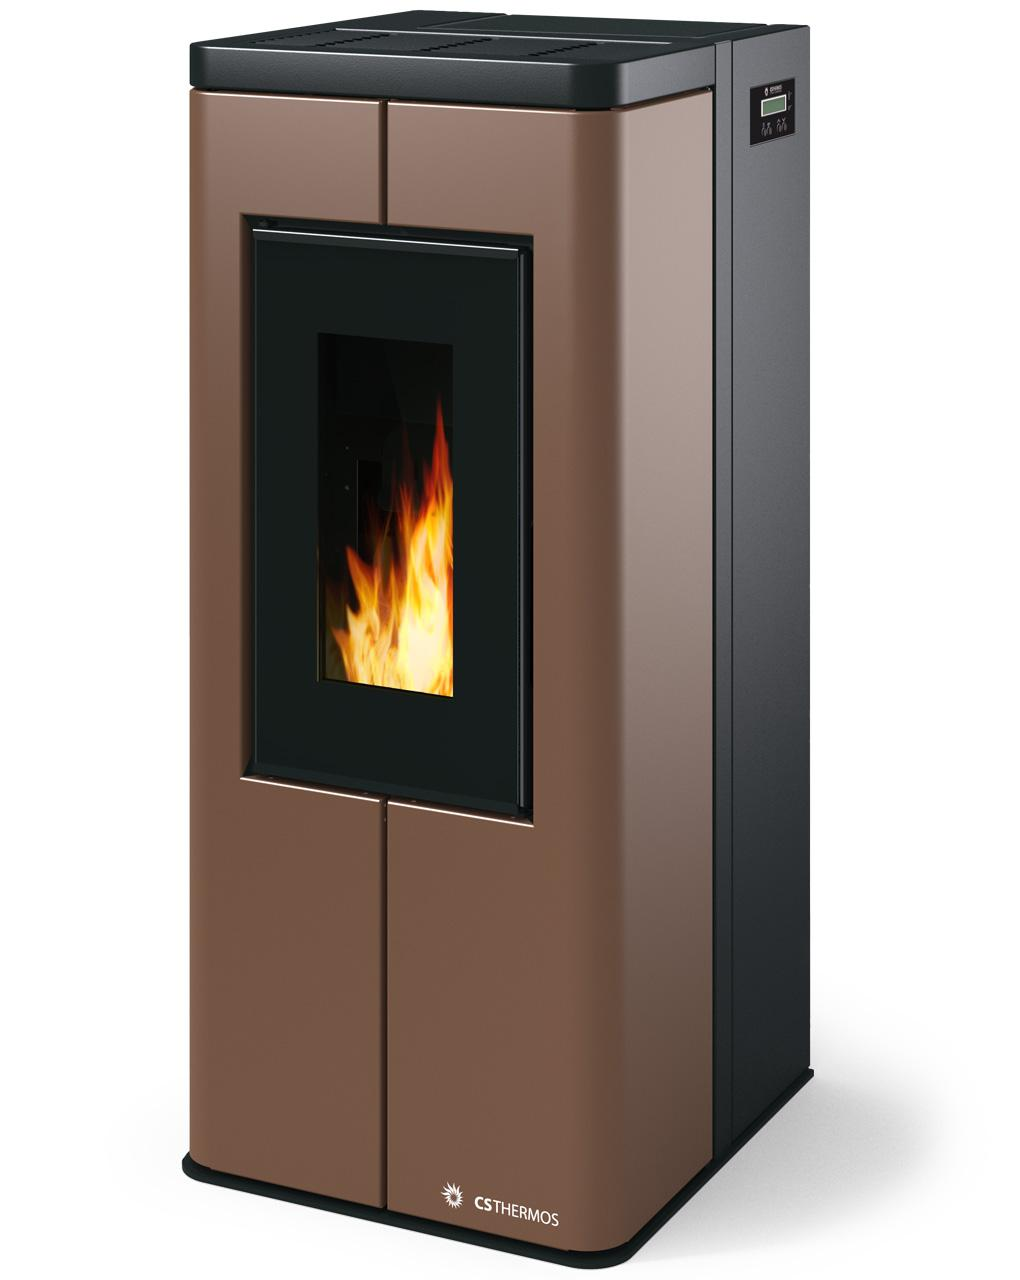 Scrigno | Stove Pellets, Pellets/Biomass | CS Thermos